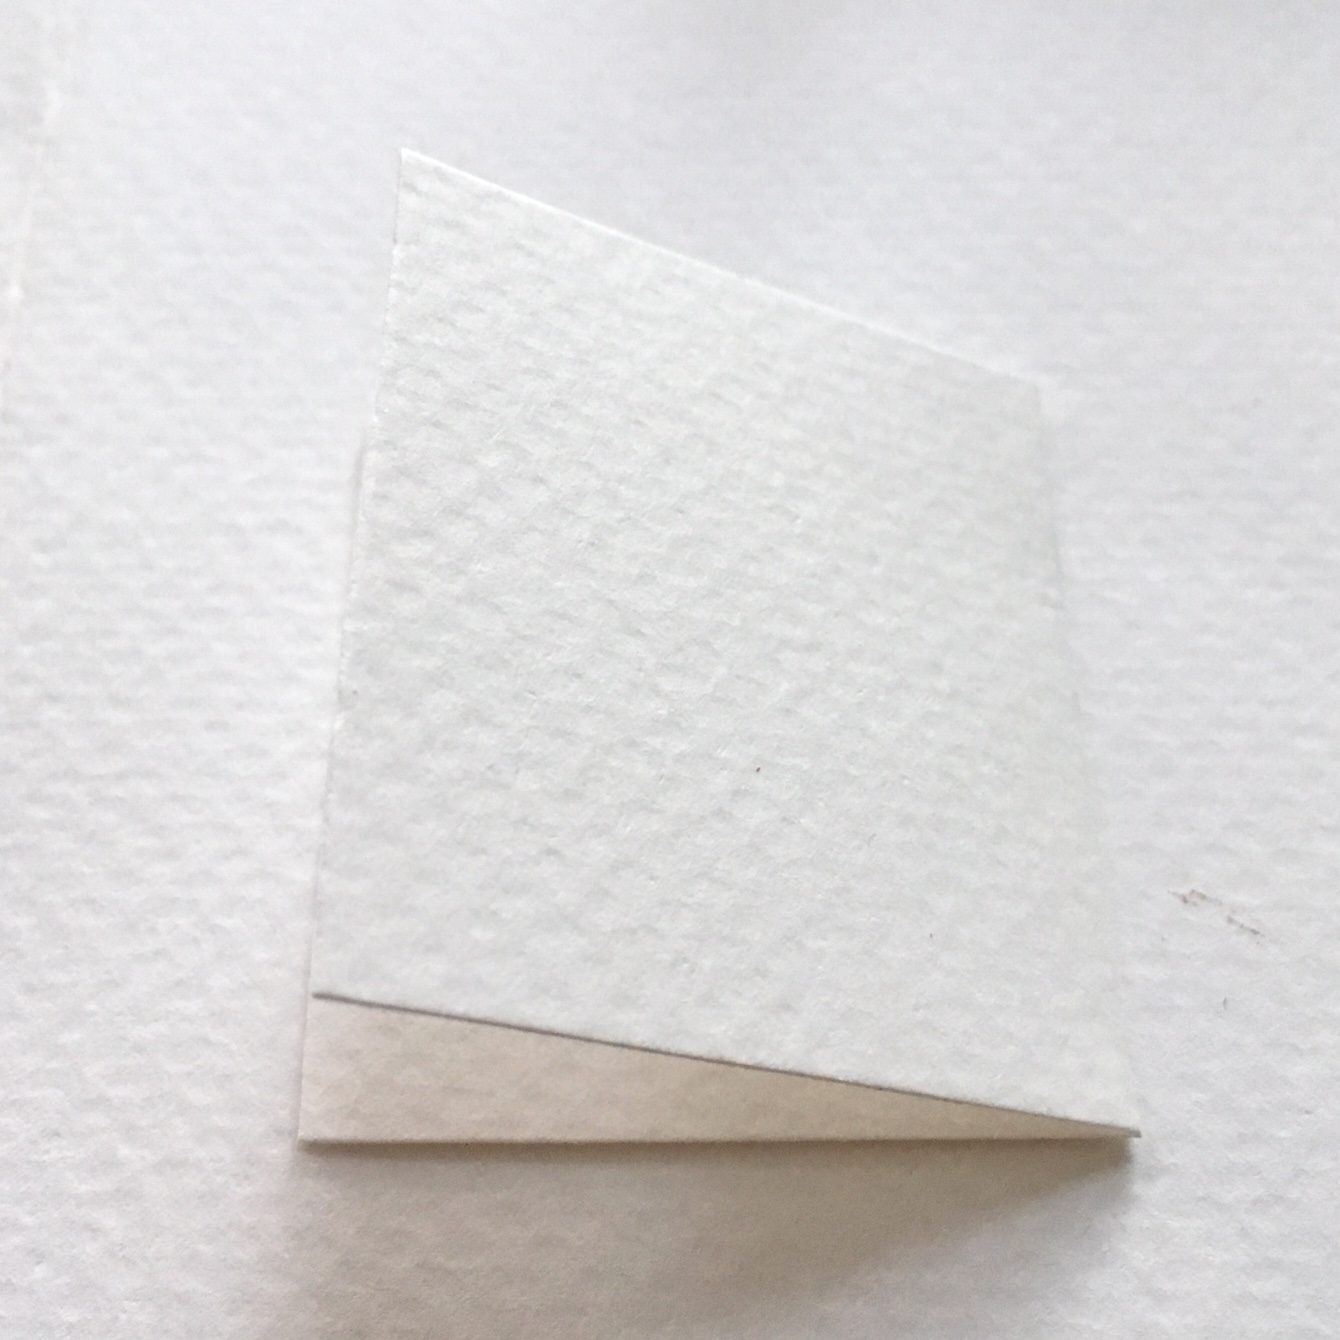 white rectangle from white watercolour paper